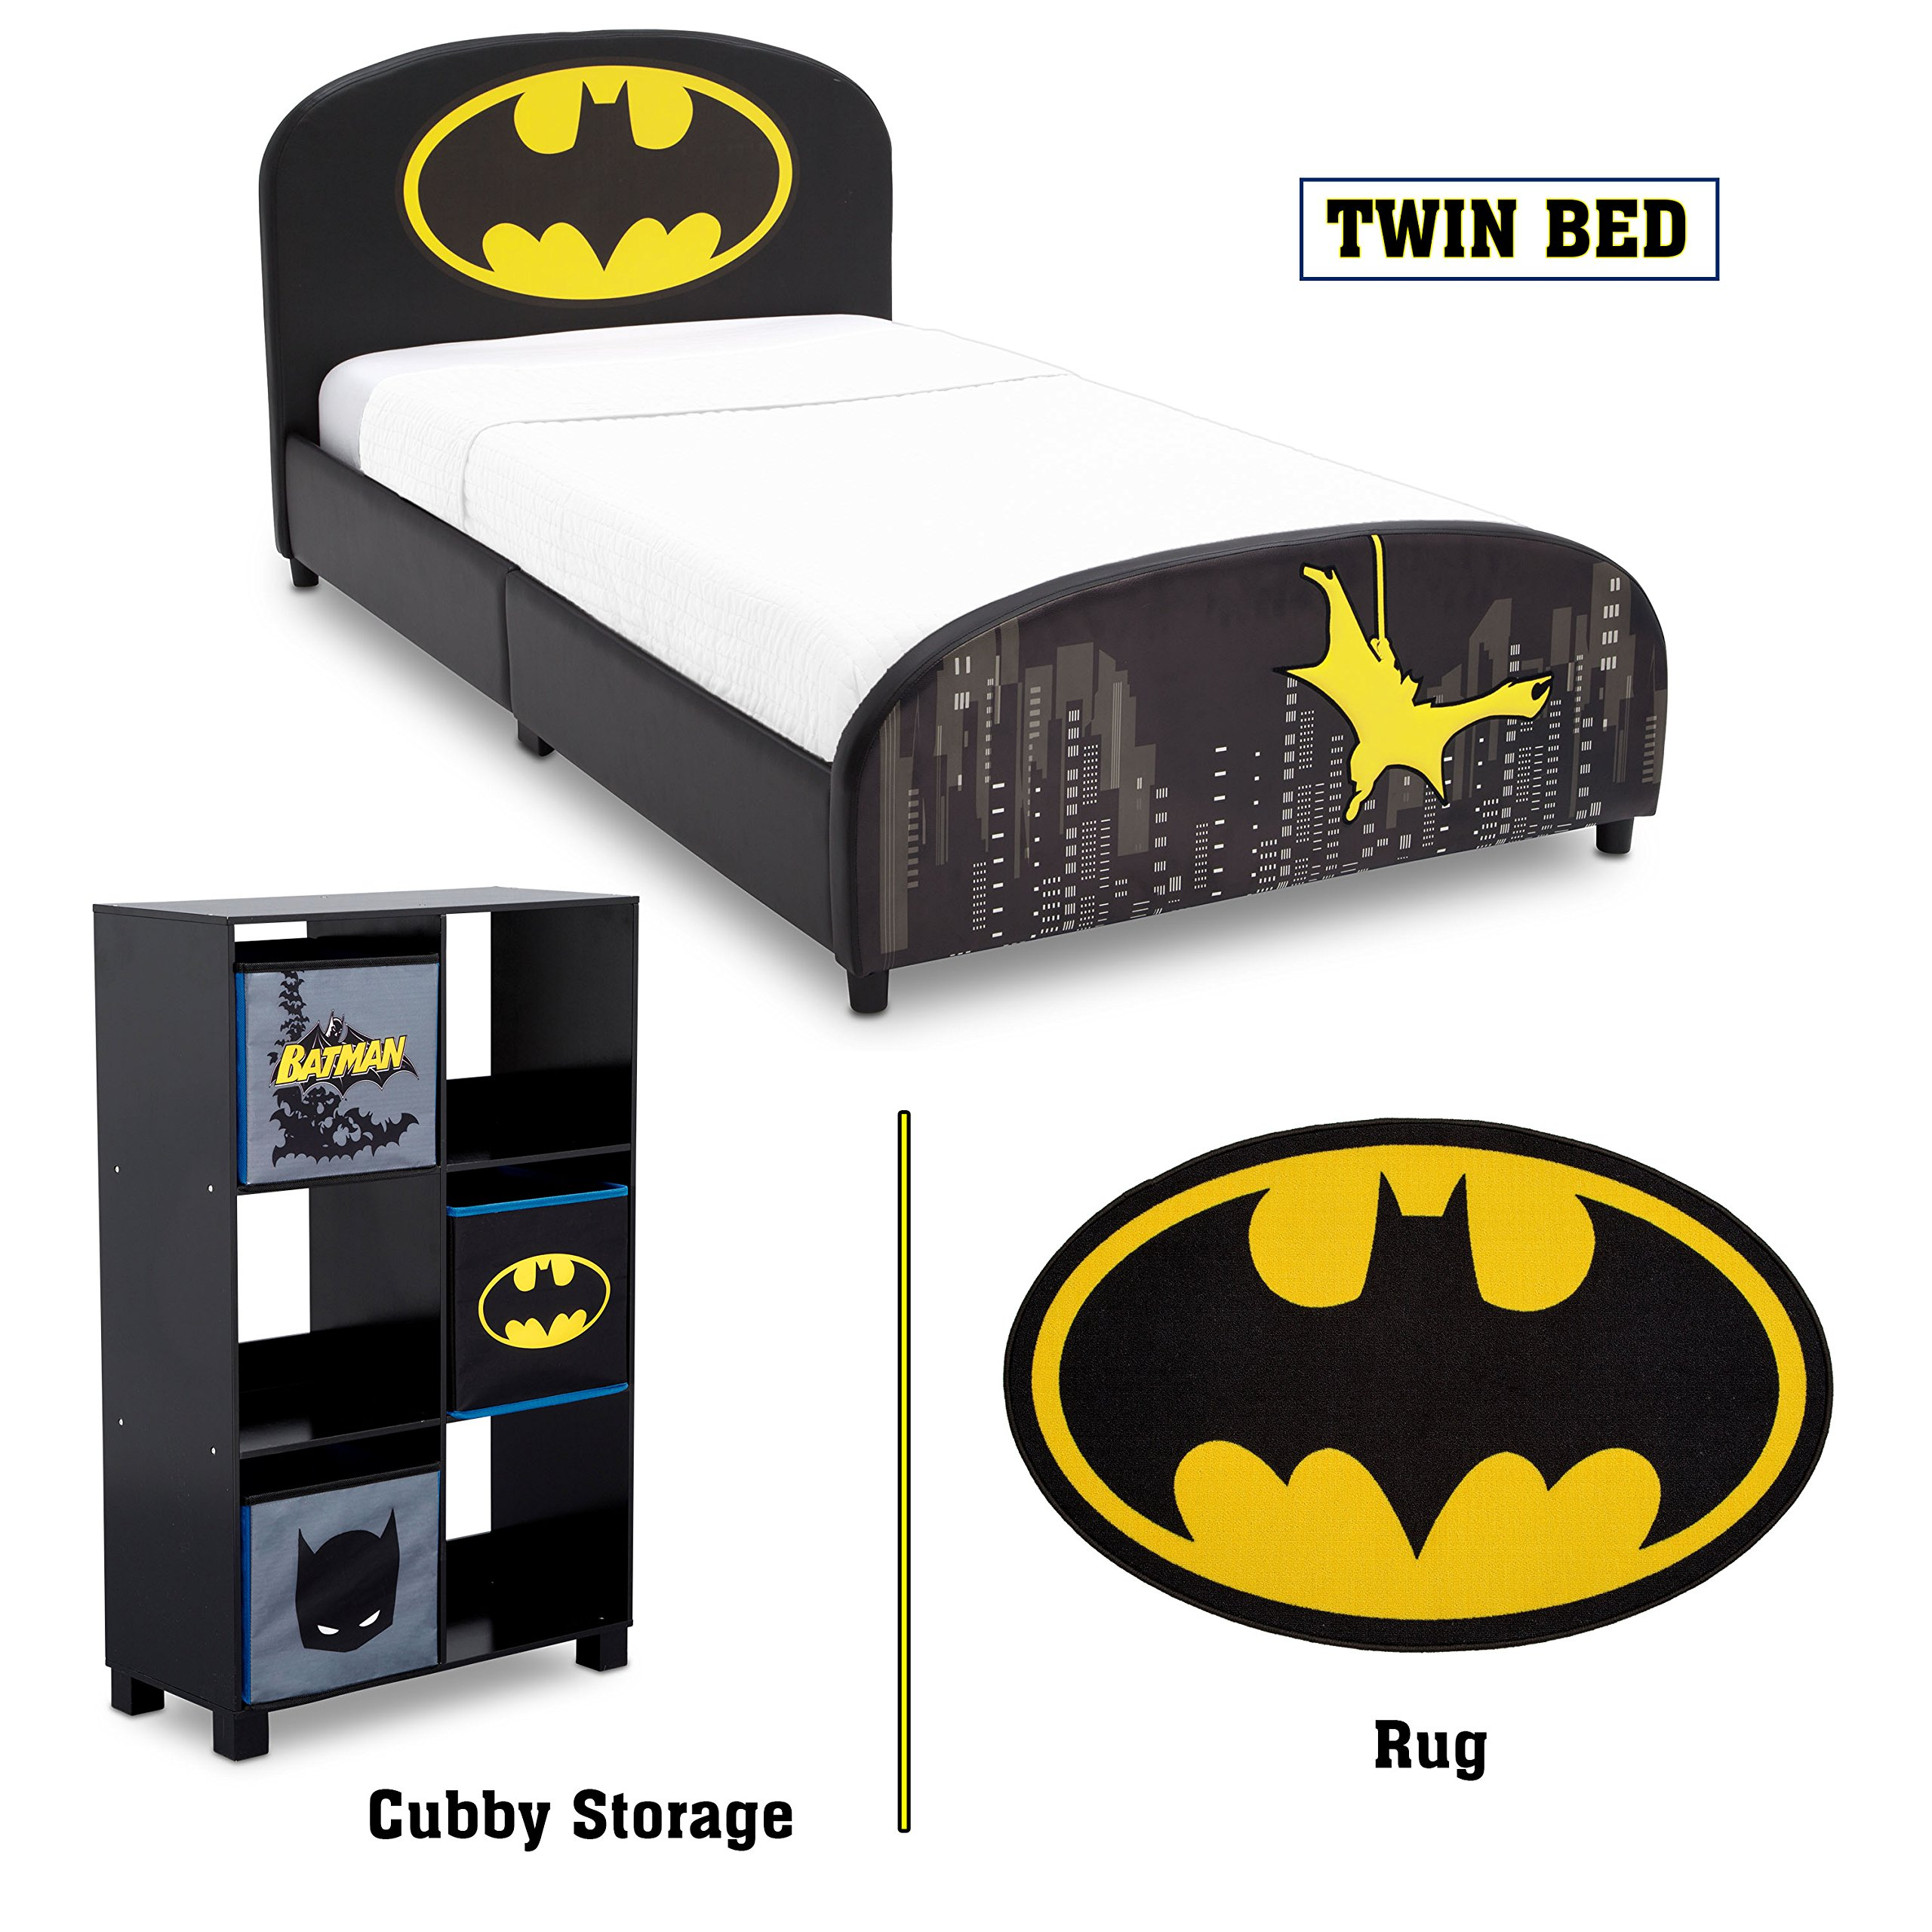 Delta Children - Batman Twin Furniture Set, 3-Piece by DC Comics (Batman Upholstered Twin Bed | Storage Unit with 6 Cubby's and Batman Bins | Batman Area Rug) by Delta Children